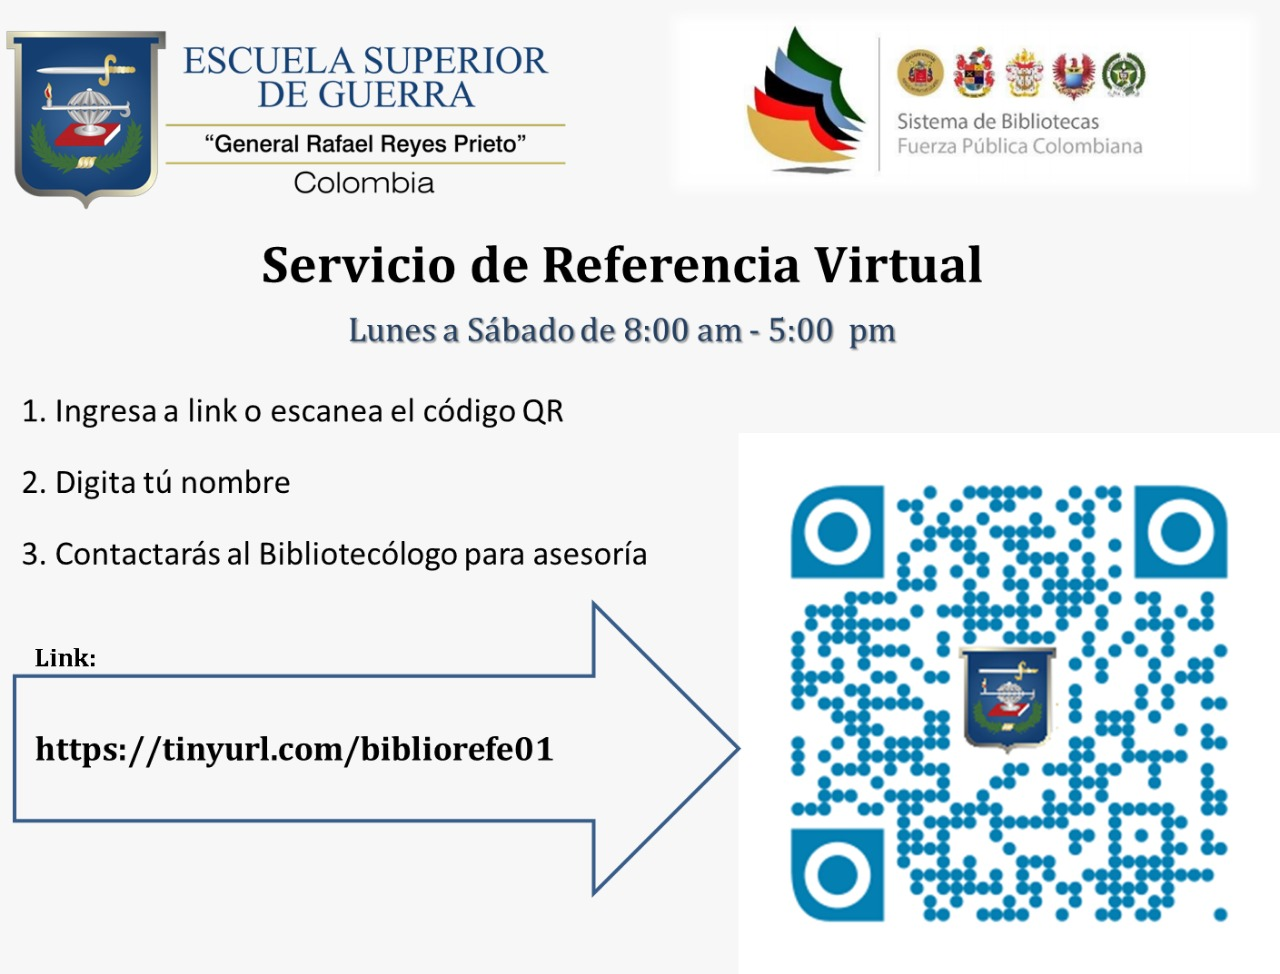 servicio de referencia virtual horario